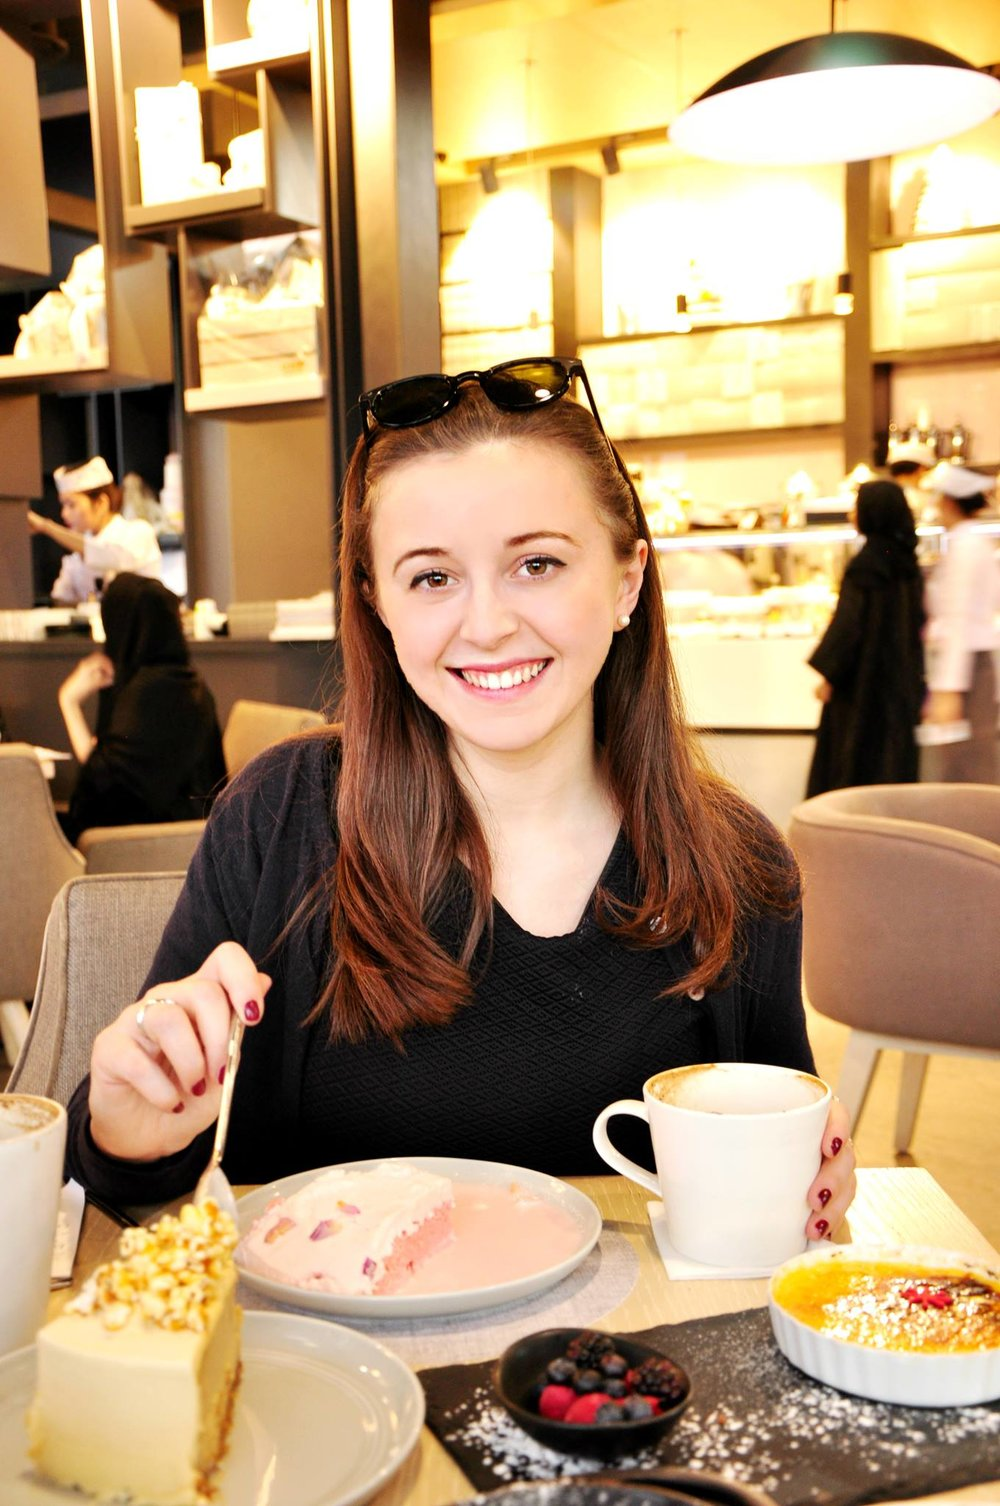 Hey guys!  - So you've stumbled across my food blog? Welcome! I'm so pleased you're here!My name is Sophie Louise Middleton. I'm 23 years old and I'm a food journalist, blogger and full-time Digital Marketing Manager for a leading Restaurant Group in London. More importantly, I'm a MASSIVE foodie.What's all this fabulous foodie business about you ask? Well, I help food lovers find totally fabulous food that's perfect for them and what they're looking for through fun and helpful restaurant and product reviews! I also inspire people to eat more mindfully by targeting establishments centred on quality, taste, seasonality and nutrition!You've got the full access pass to look around, as well as on my social media channels, where I'd love if you could give me a follow! I'm warning you though; you might get hungry!If you want to say hello, please feel free to contact me on thefabulousfoodieblog@gmail.com